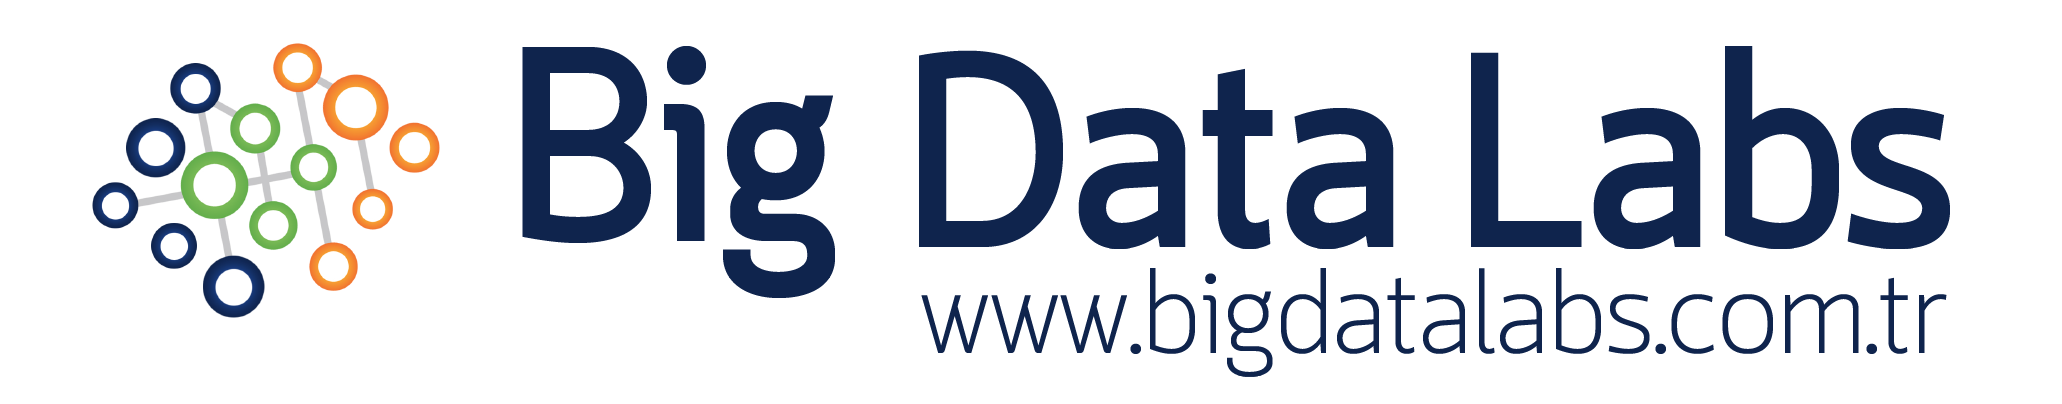 Big Data Labs